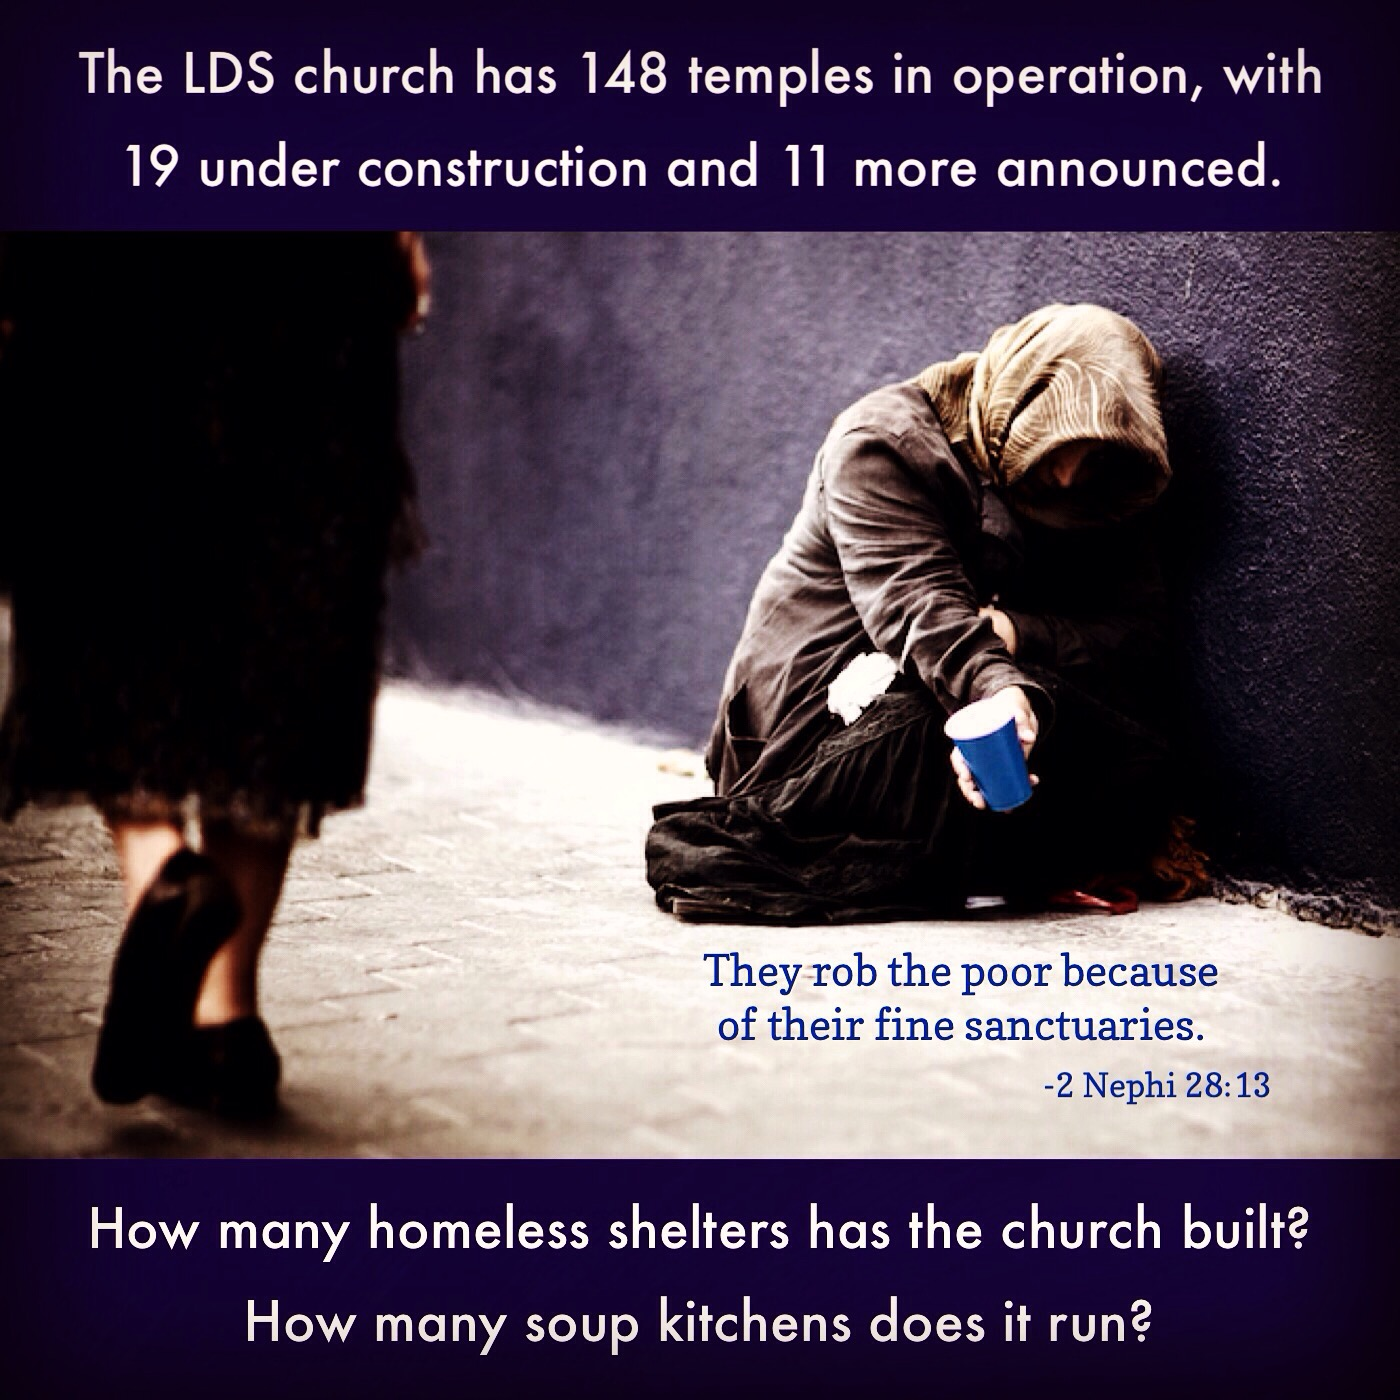 How many homeless shelters?